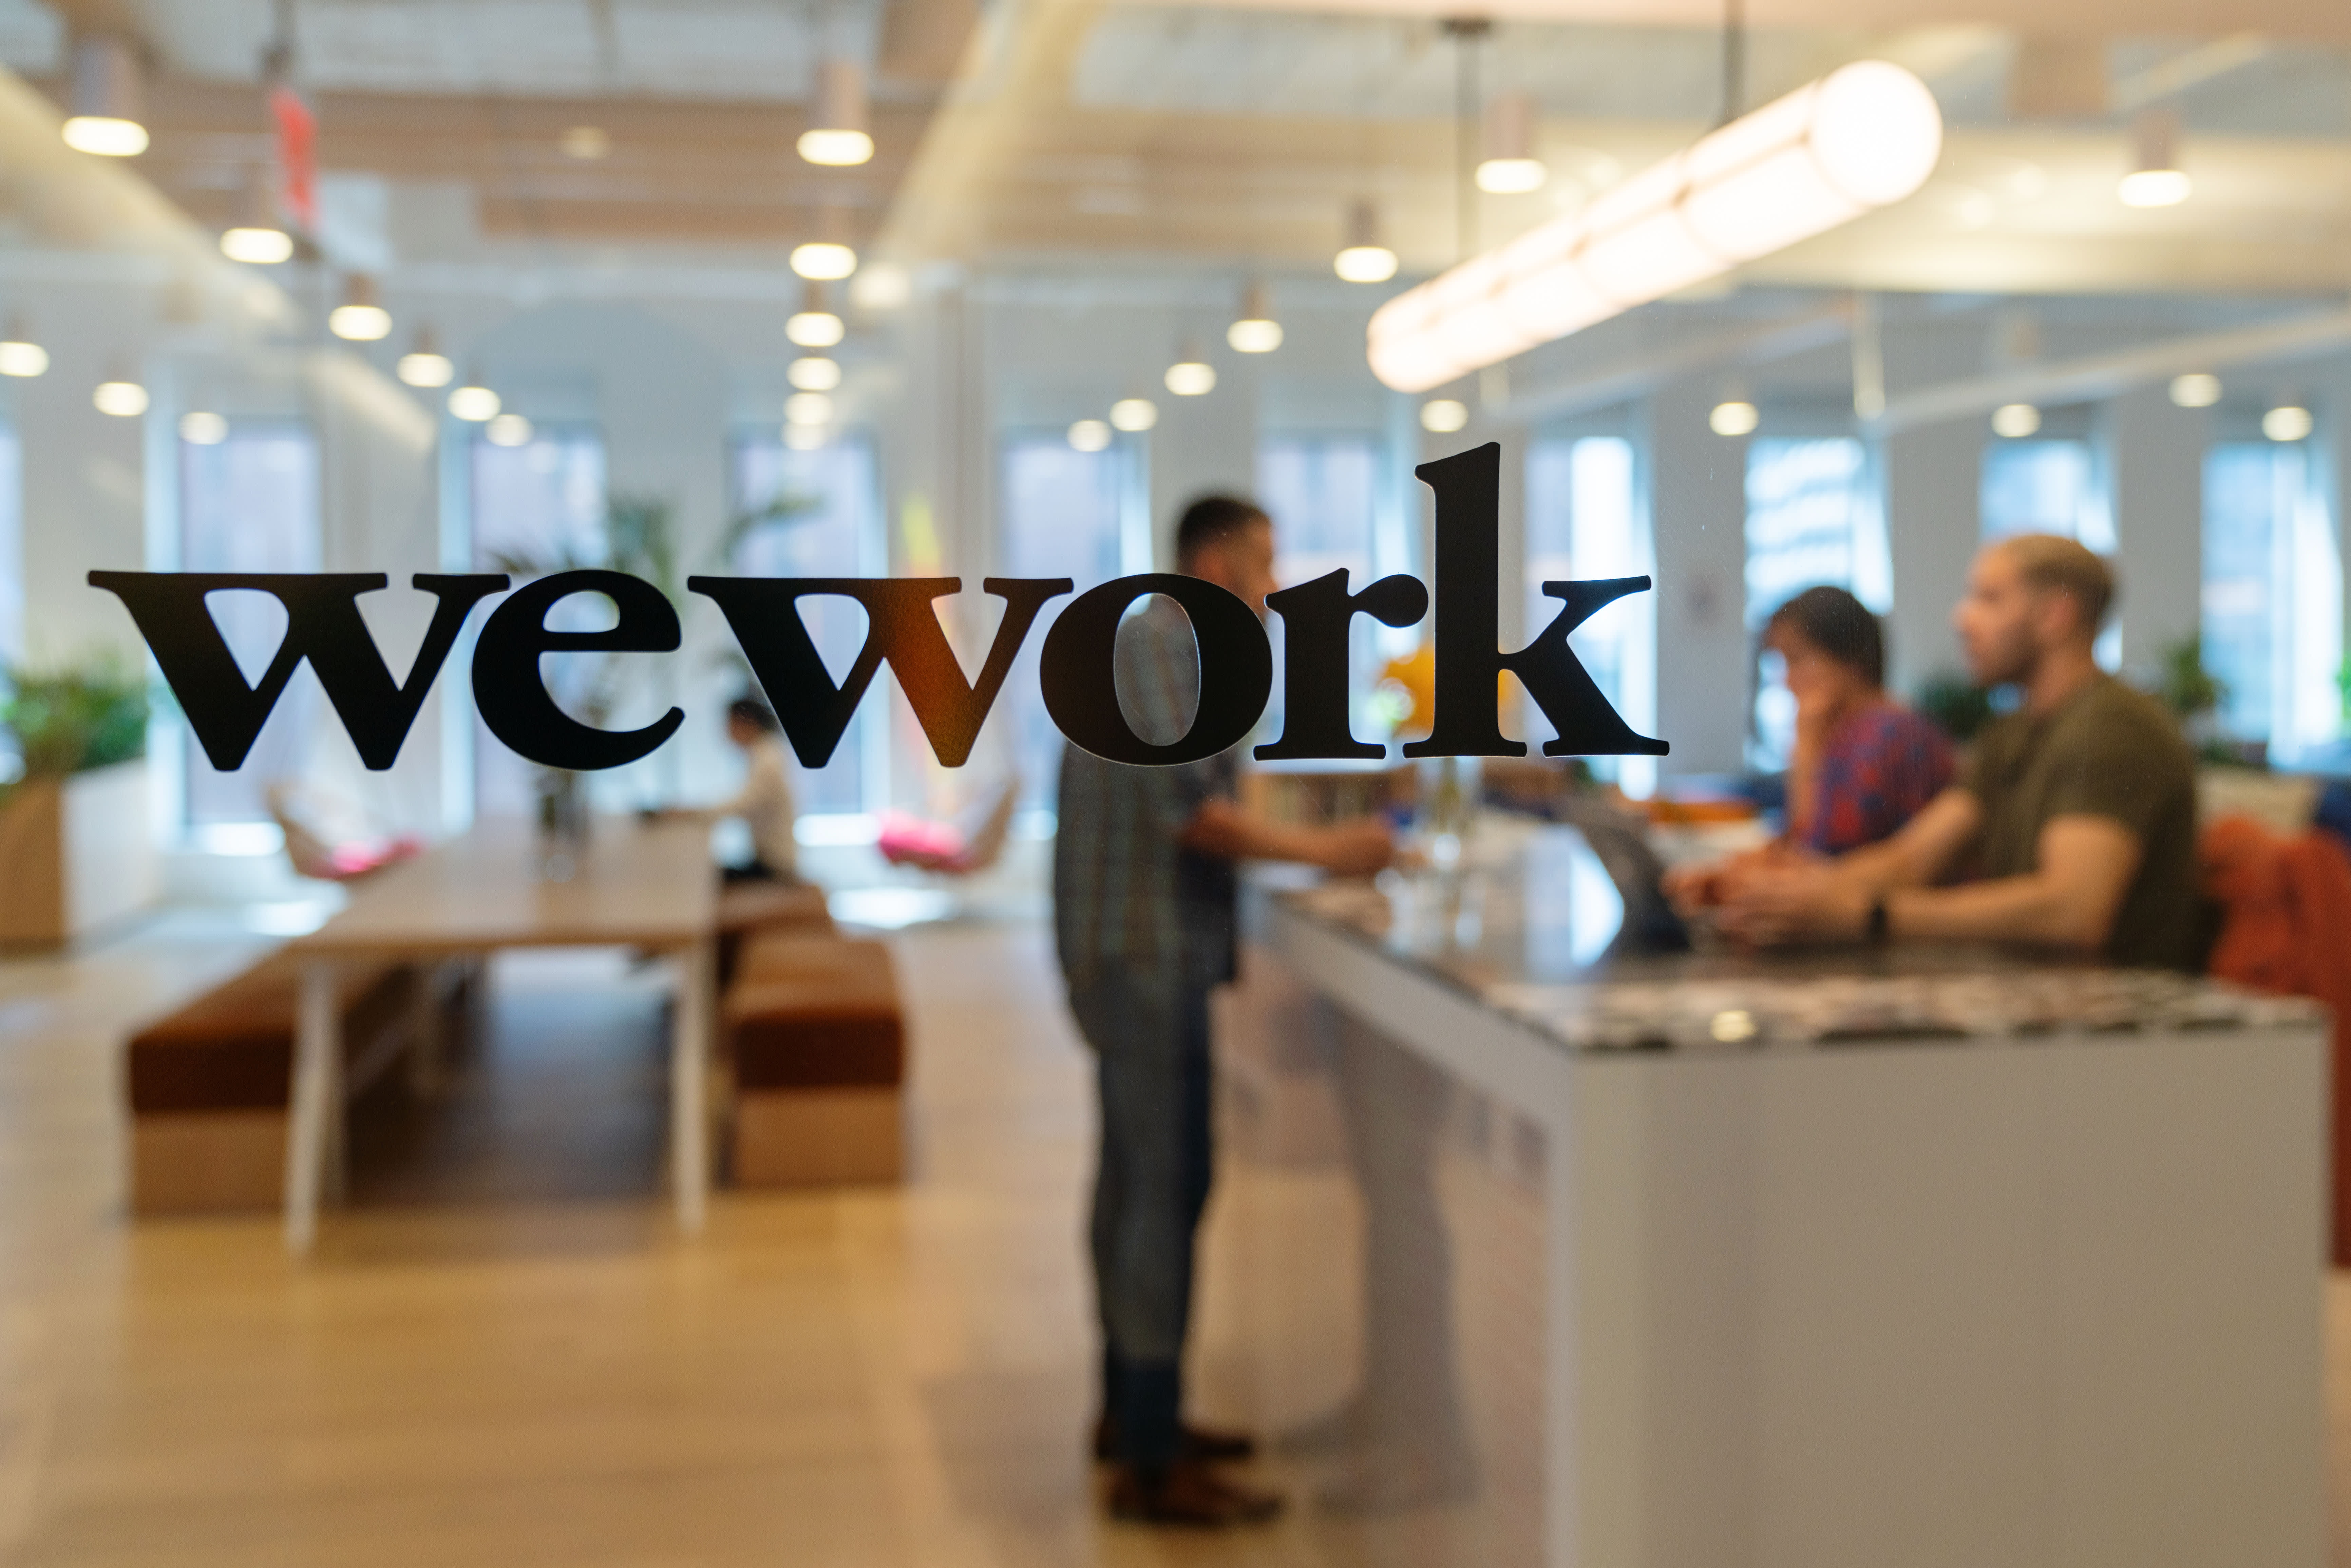 WeWork is dramatically slashing its IPO valuation to less than $25 billion because of weak demand